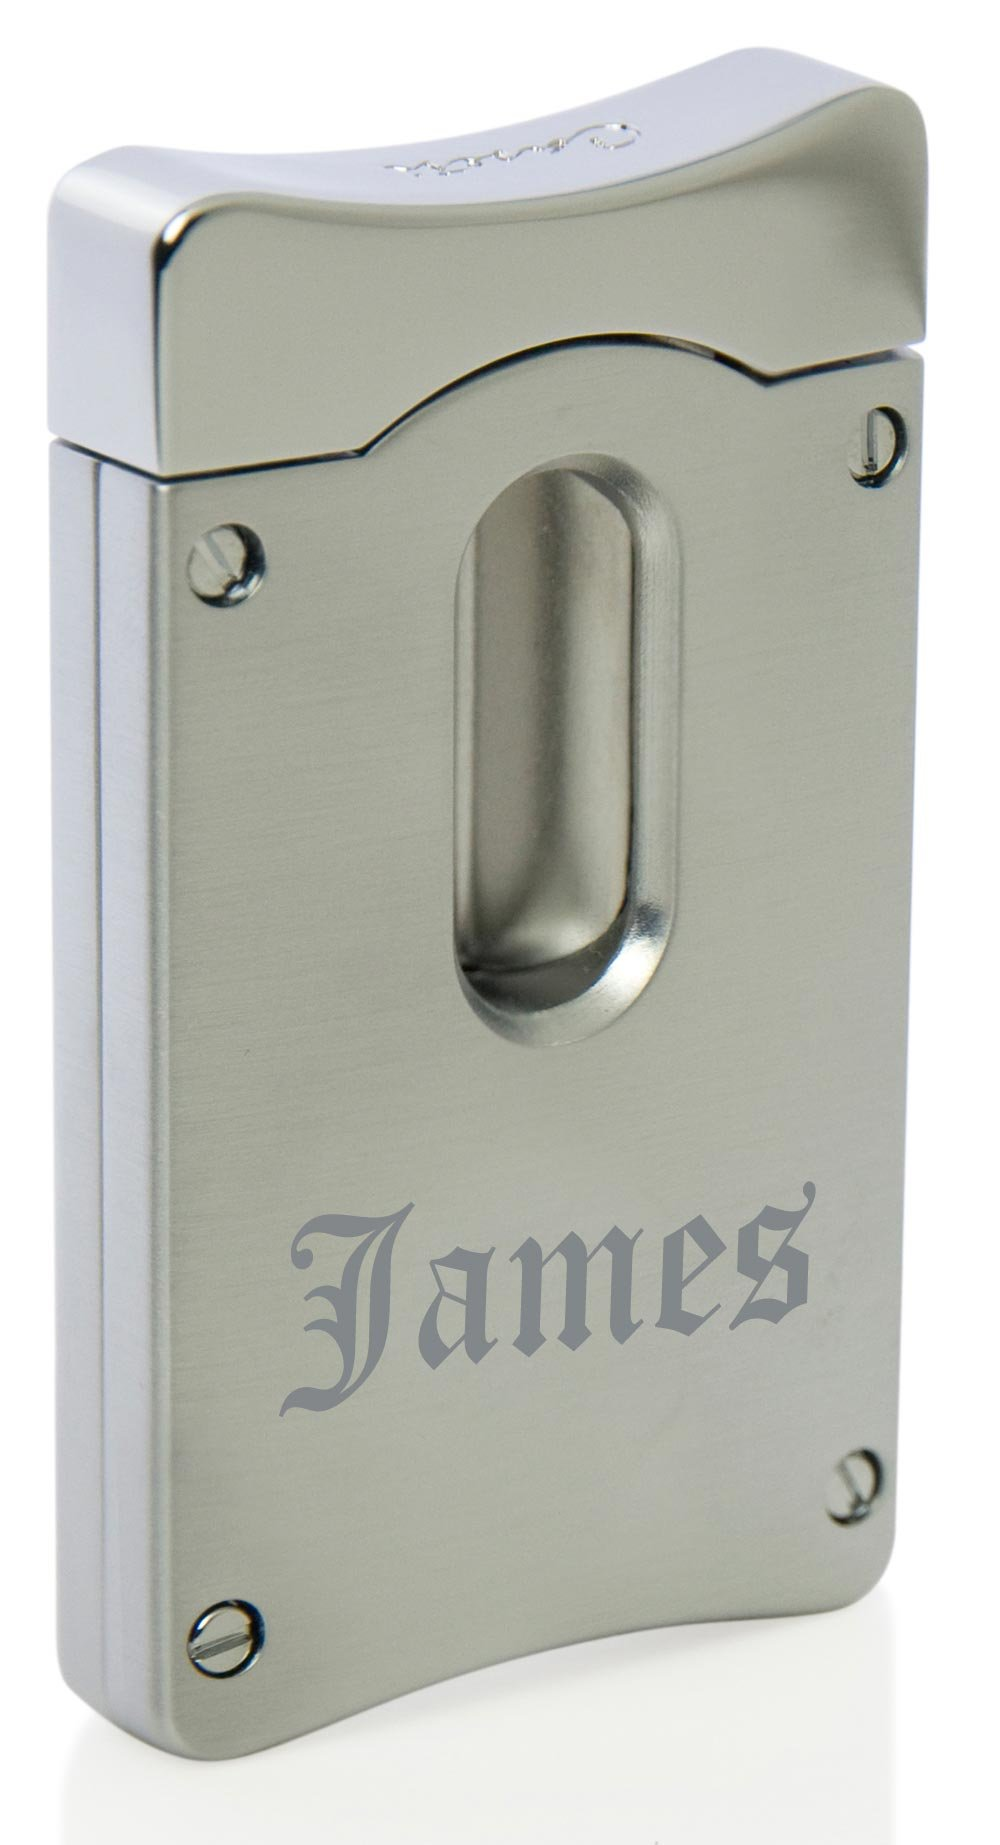 Personalized Caseti Wedge V Cigar Cutter - Satin Chrome with Free Laser Engraving